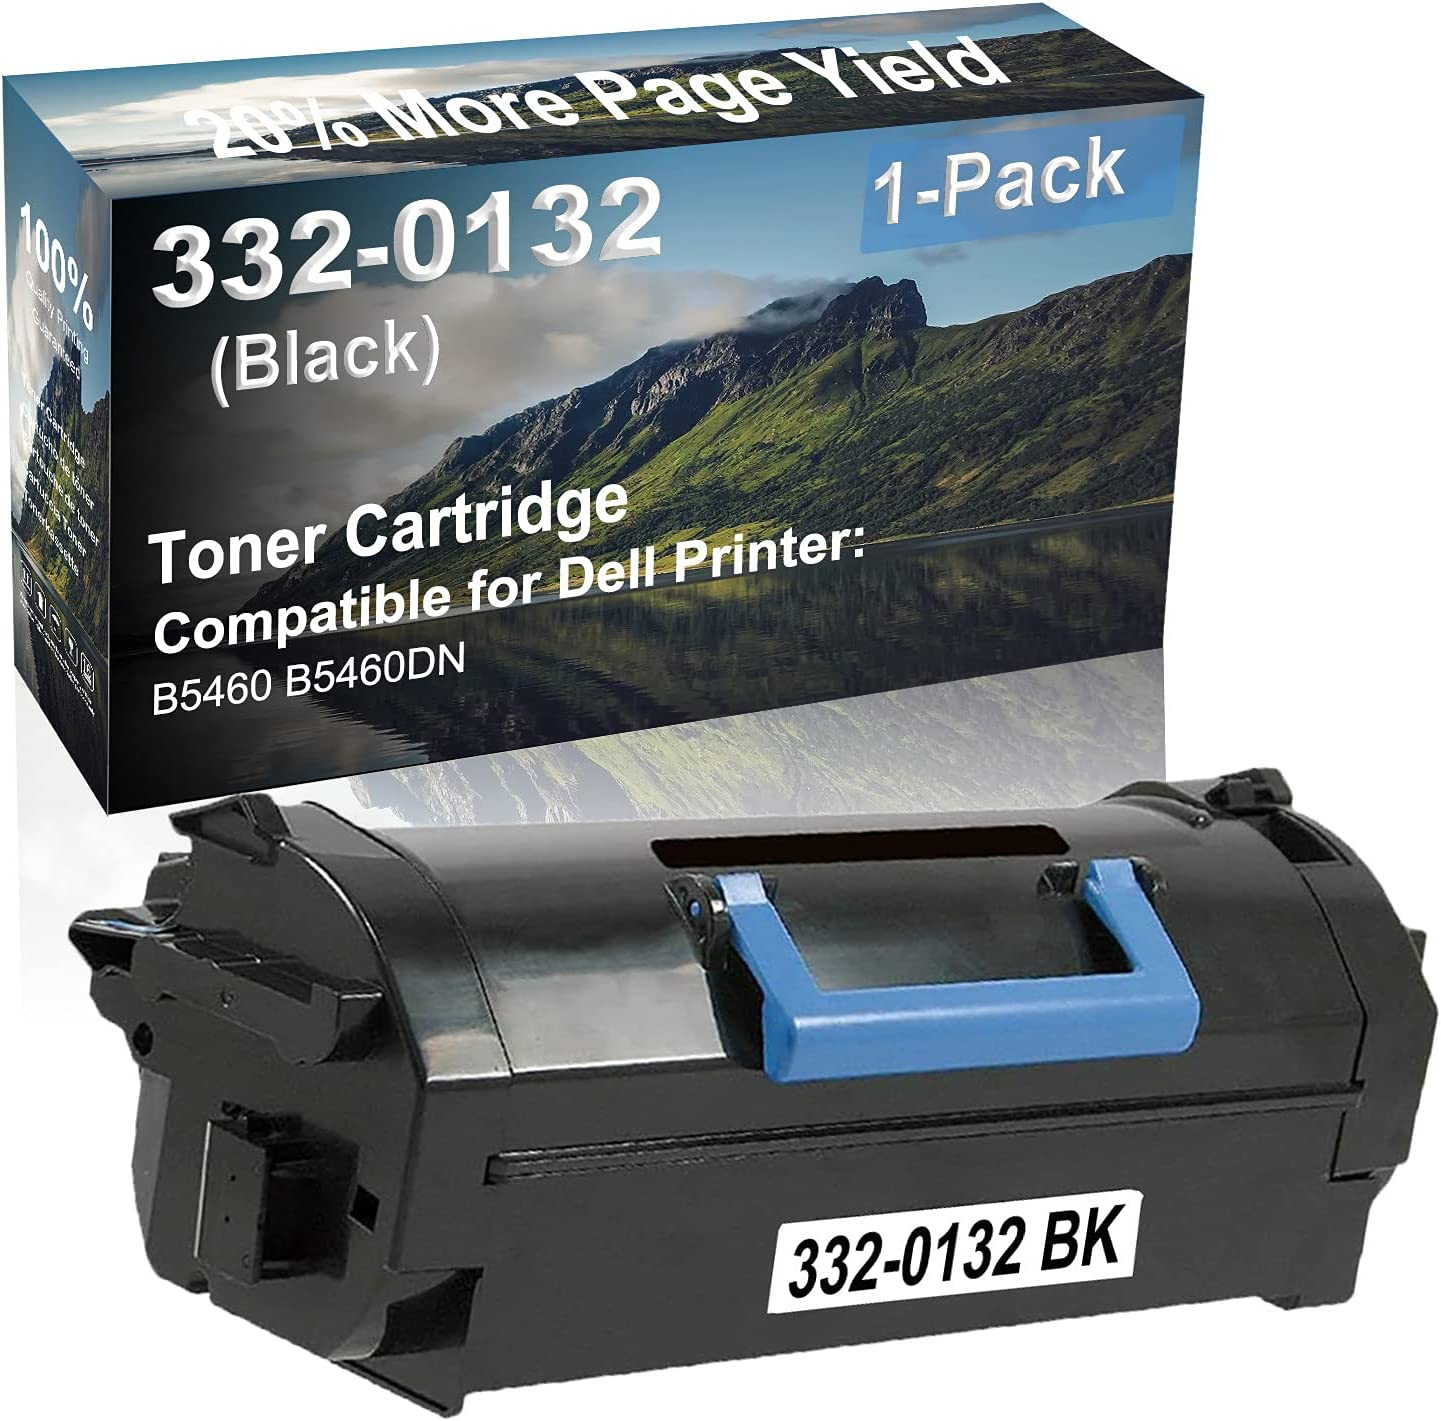 1-Pack Compatible High Yield B5460, B5460DN Laser Printer Toner Cartridge Replacement for Dell 332-0132 Printer Cartridge (Black)